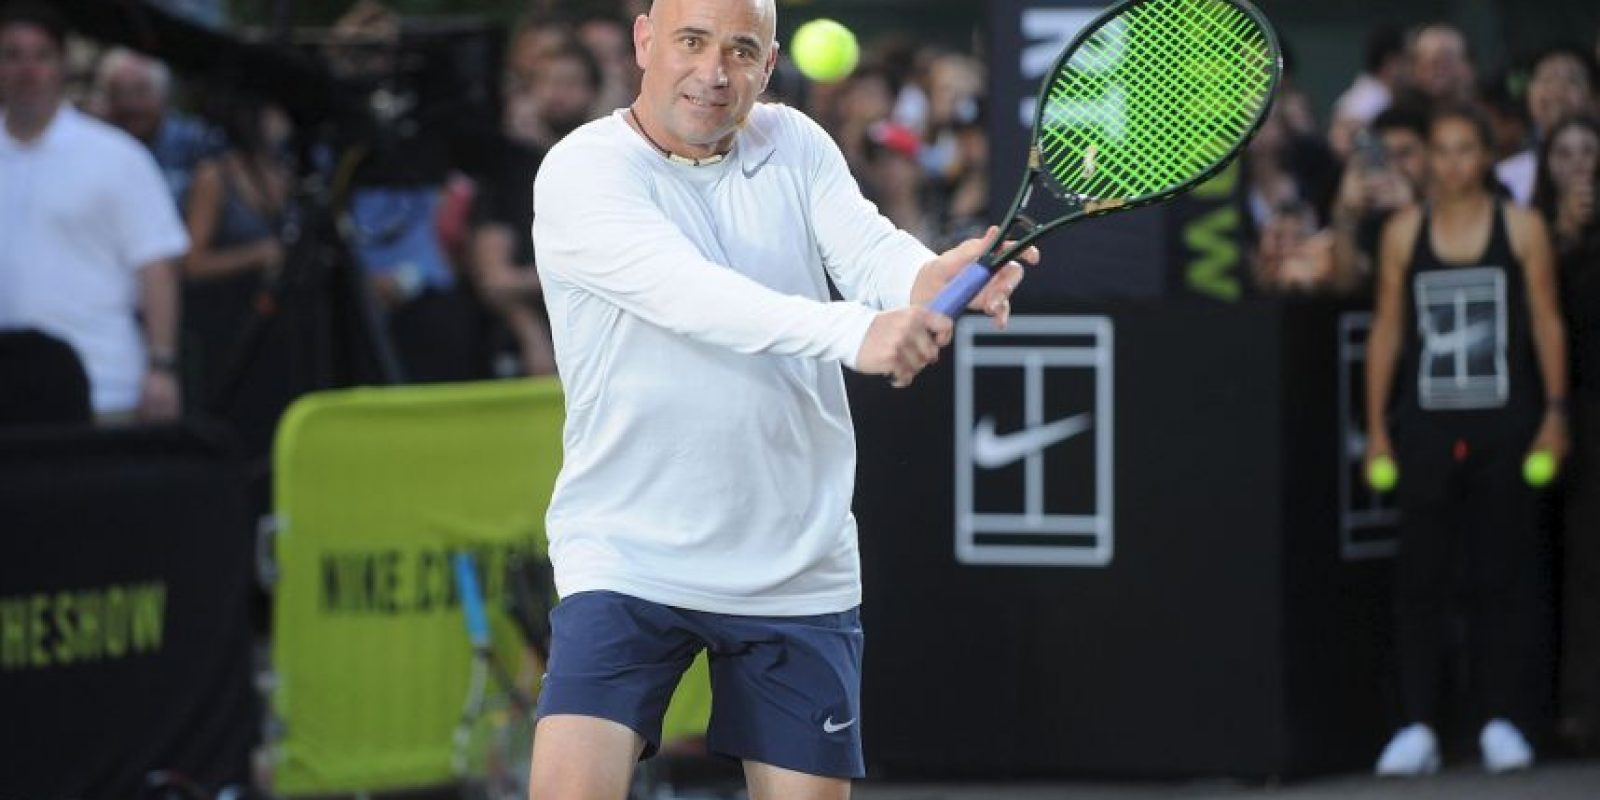 Y André Agassi, quien ganó 8 torneos de Grand Slam. Foto: Getty Images